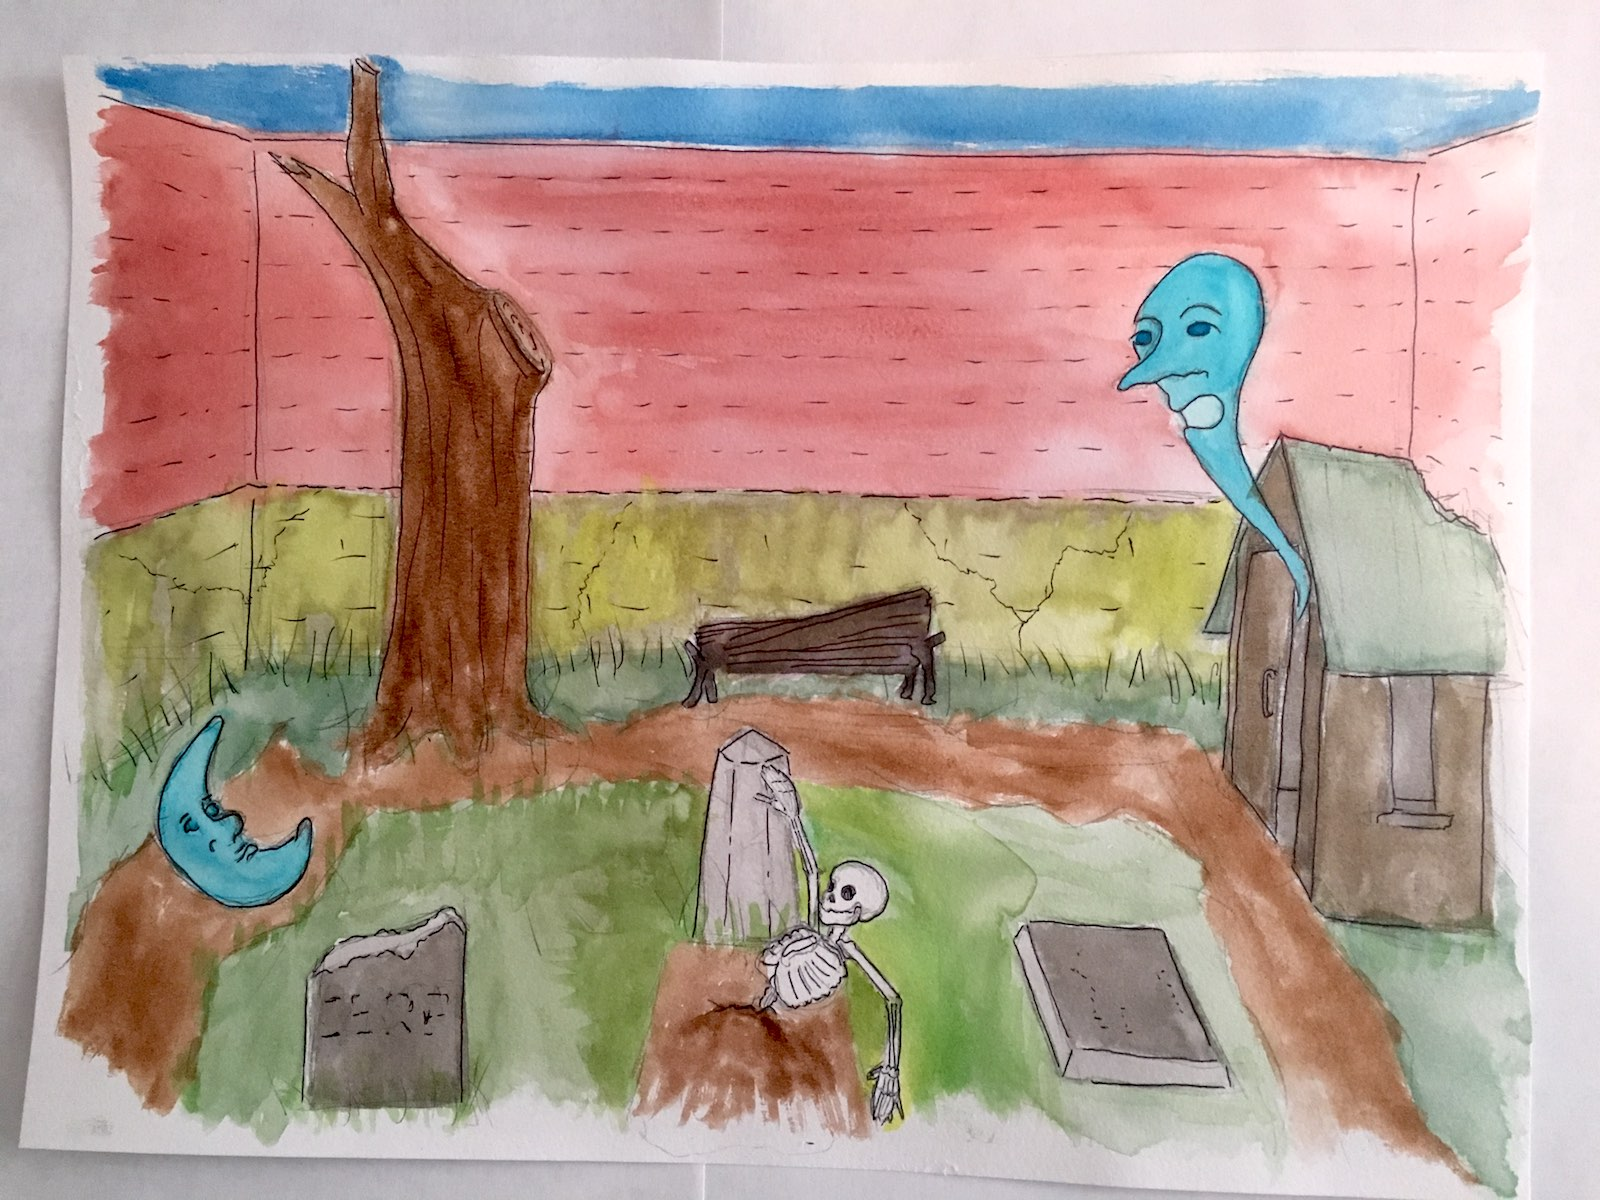 A watercolor paint of the previously-pictured graveyard 100 years later, with two larger ghosts and that same skeleton now halfway out of the ground